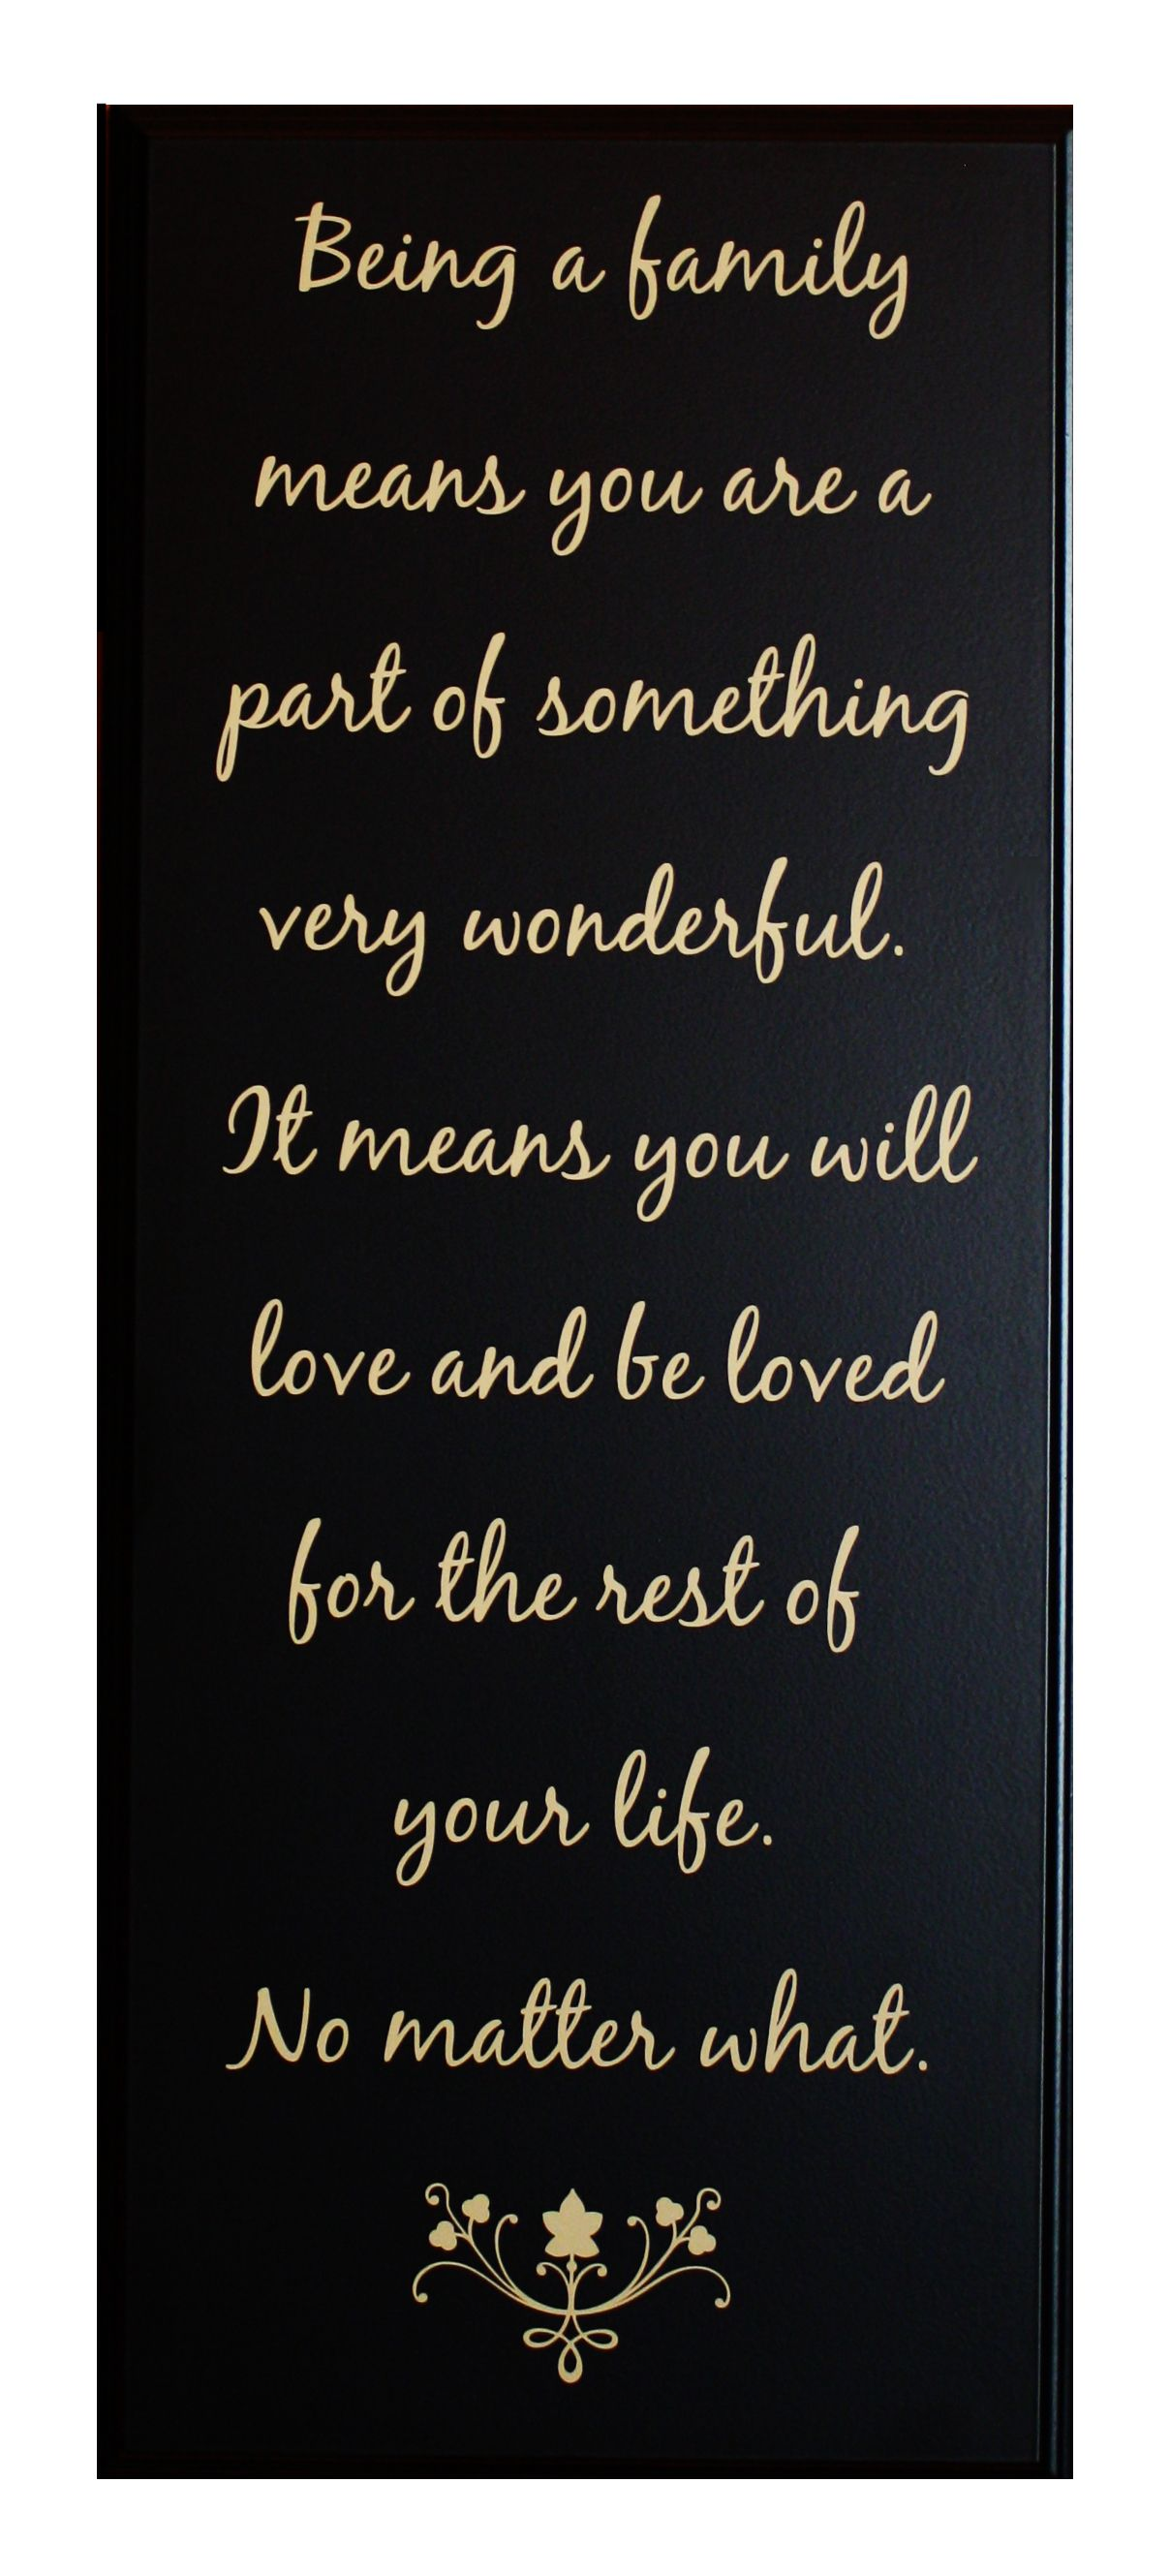 The Meaning Of Family Beautiful Quotes To Live By Pinterest